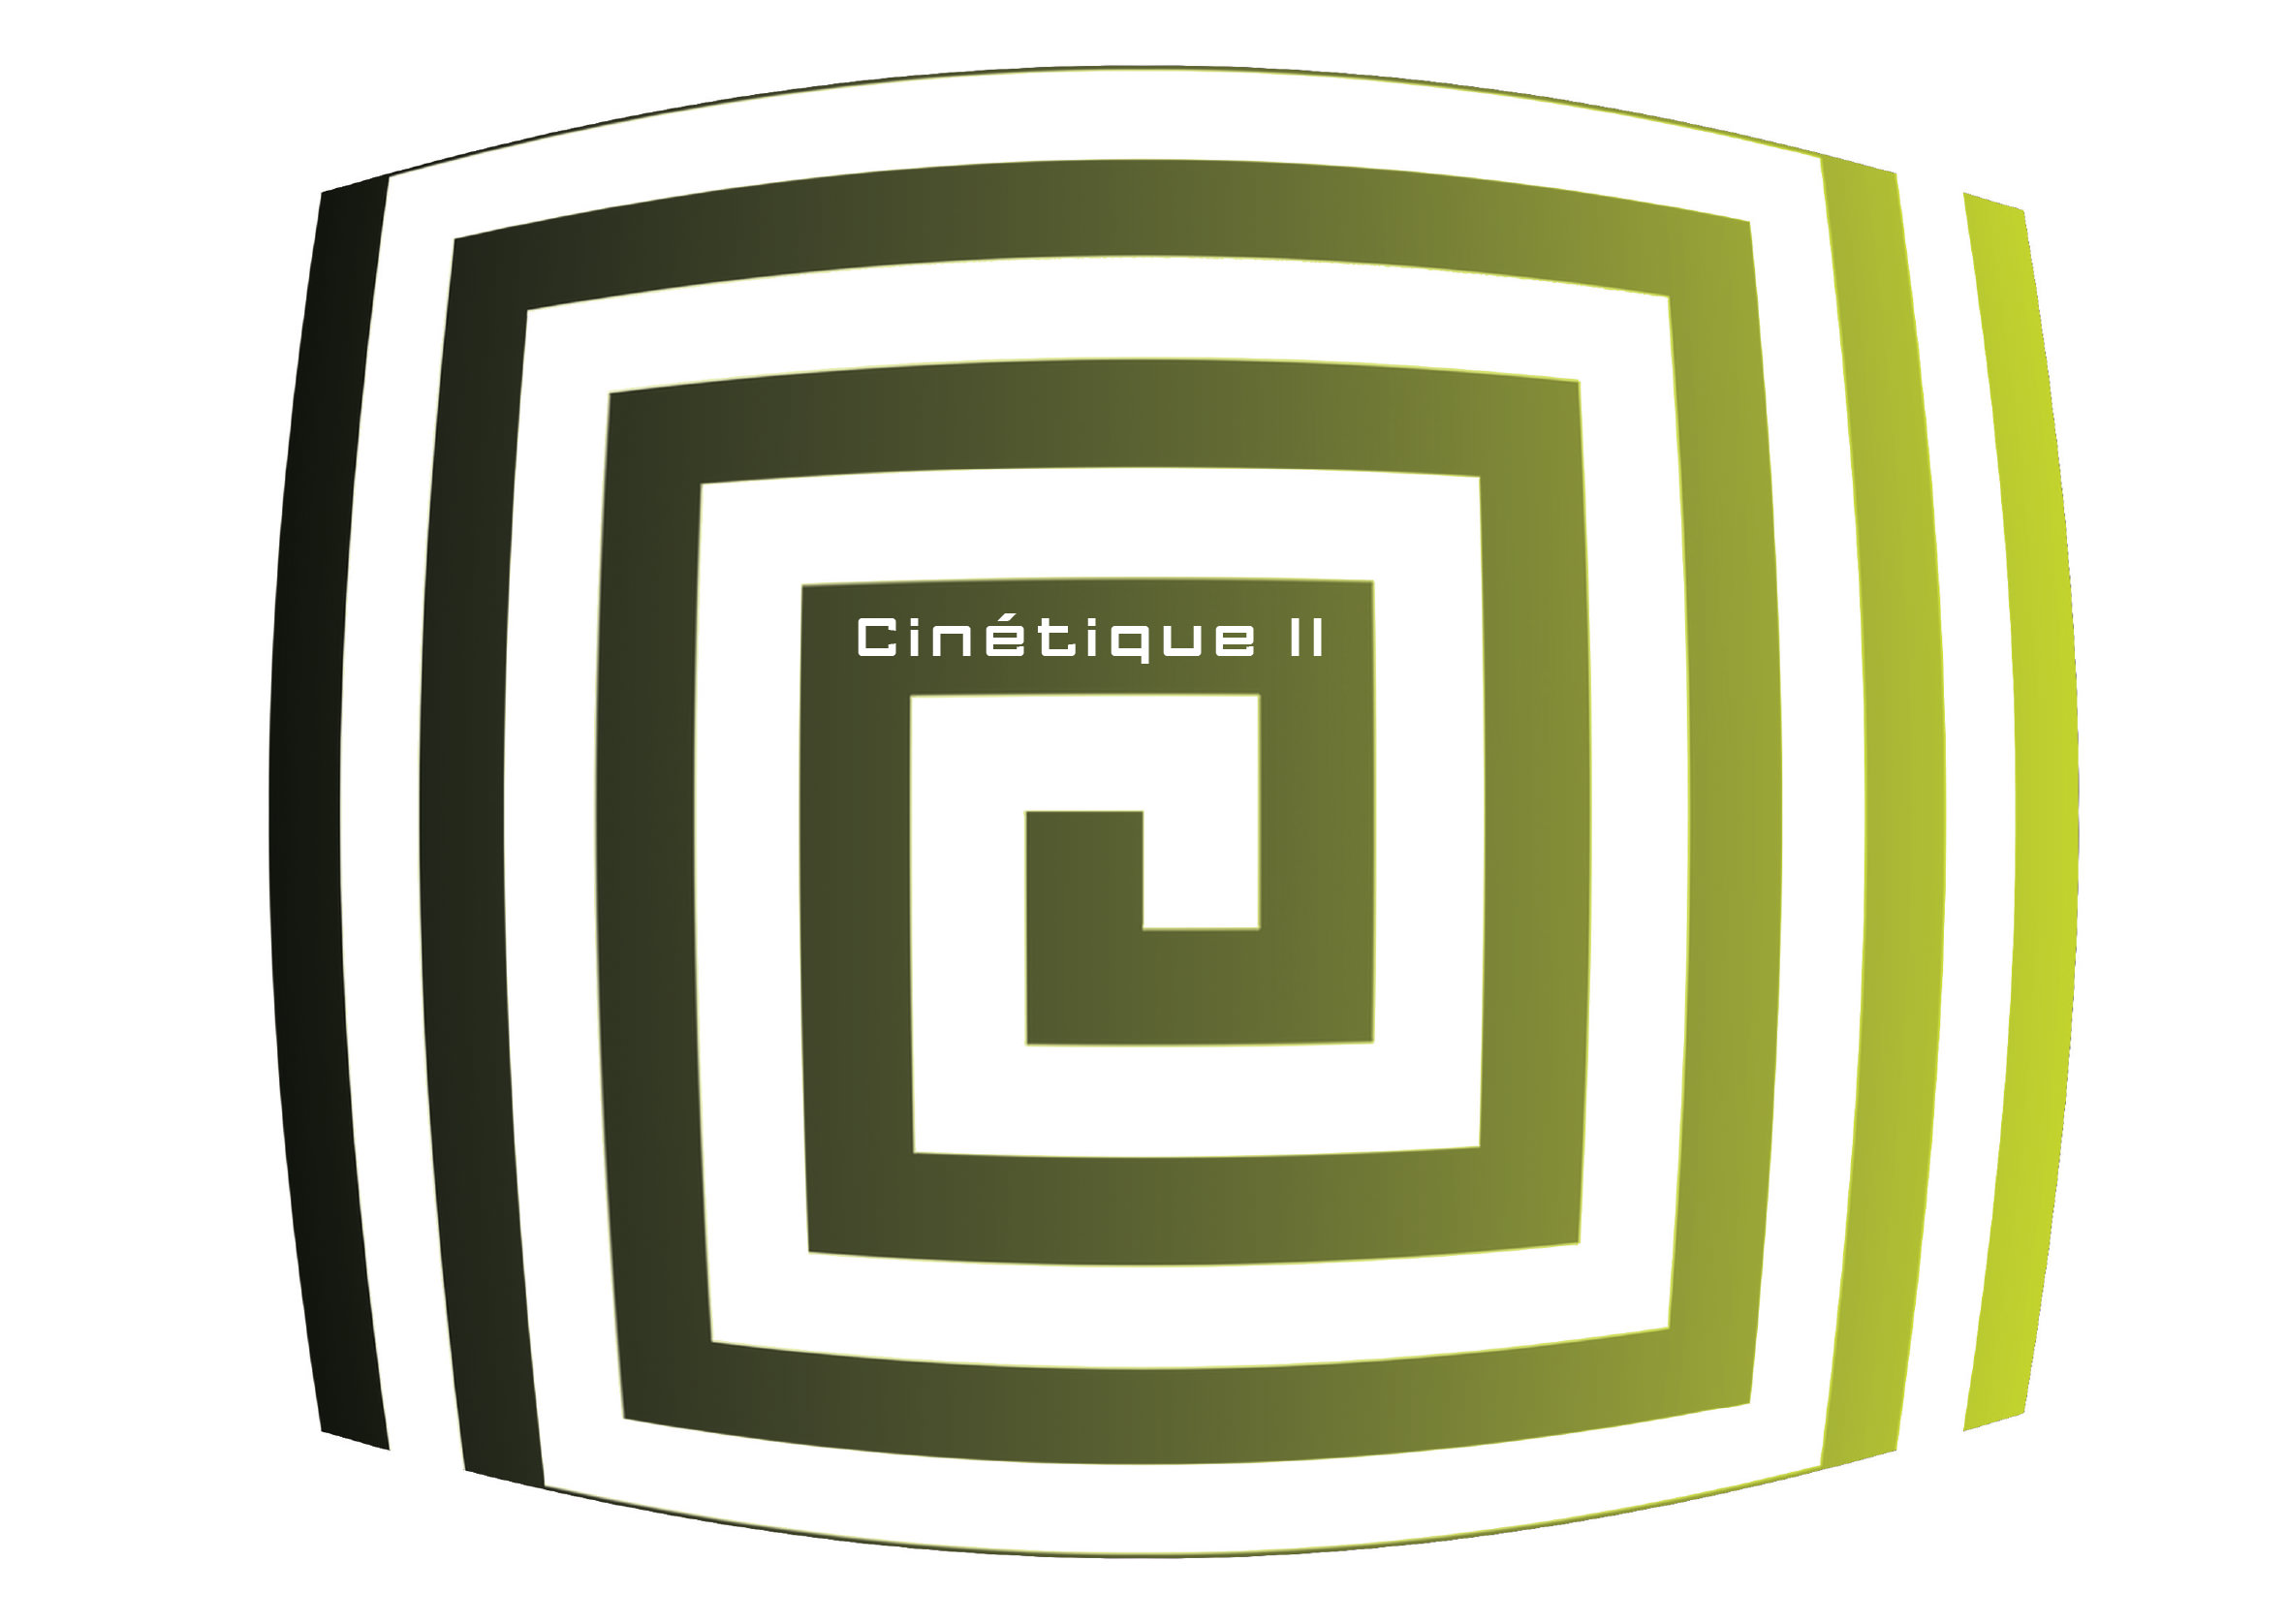 cinetique-2-a.indd